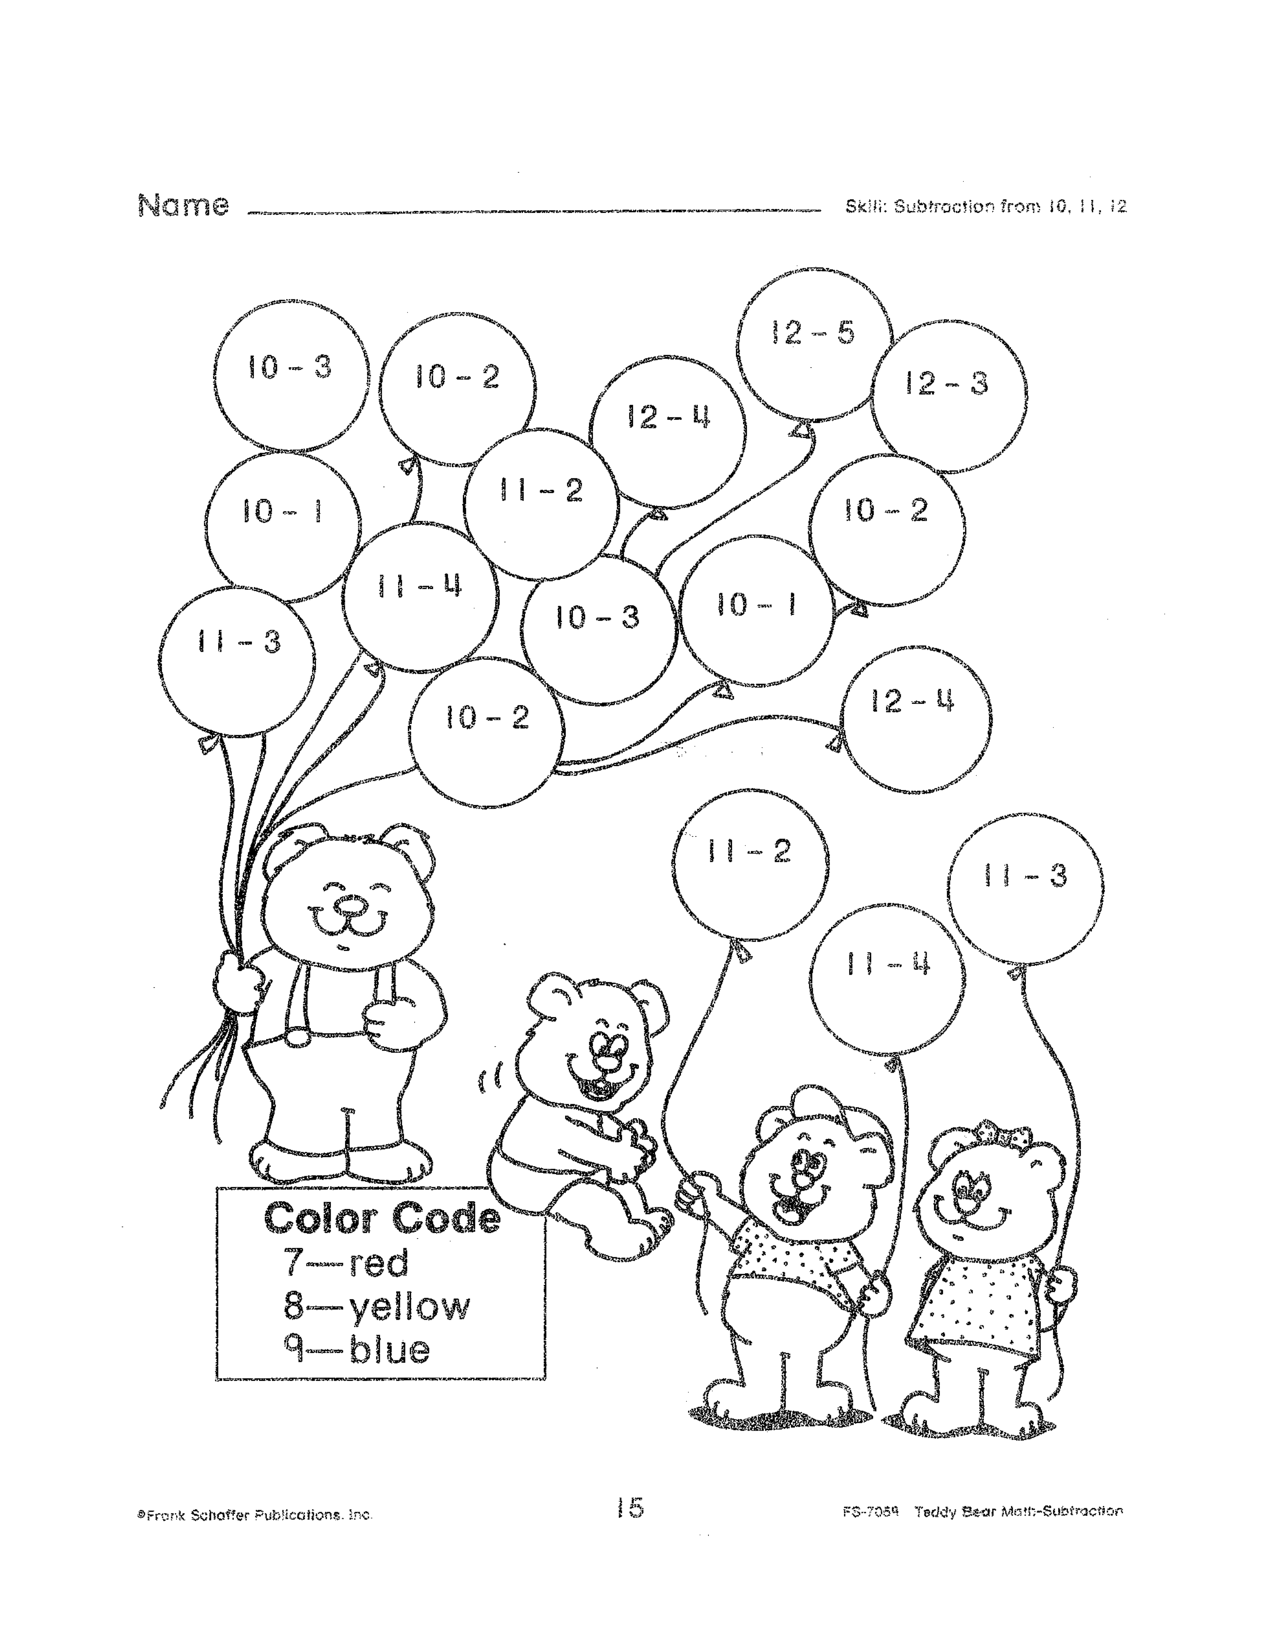 worksheet Printable Worksheets For 2nd Grade 2nd grade subtraction 2 digit low numbers kg math review worksheetsprintable